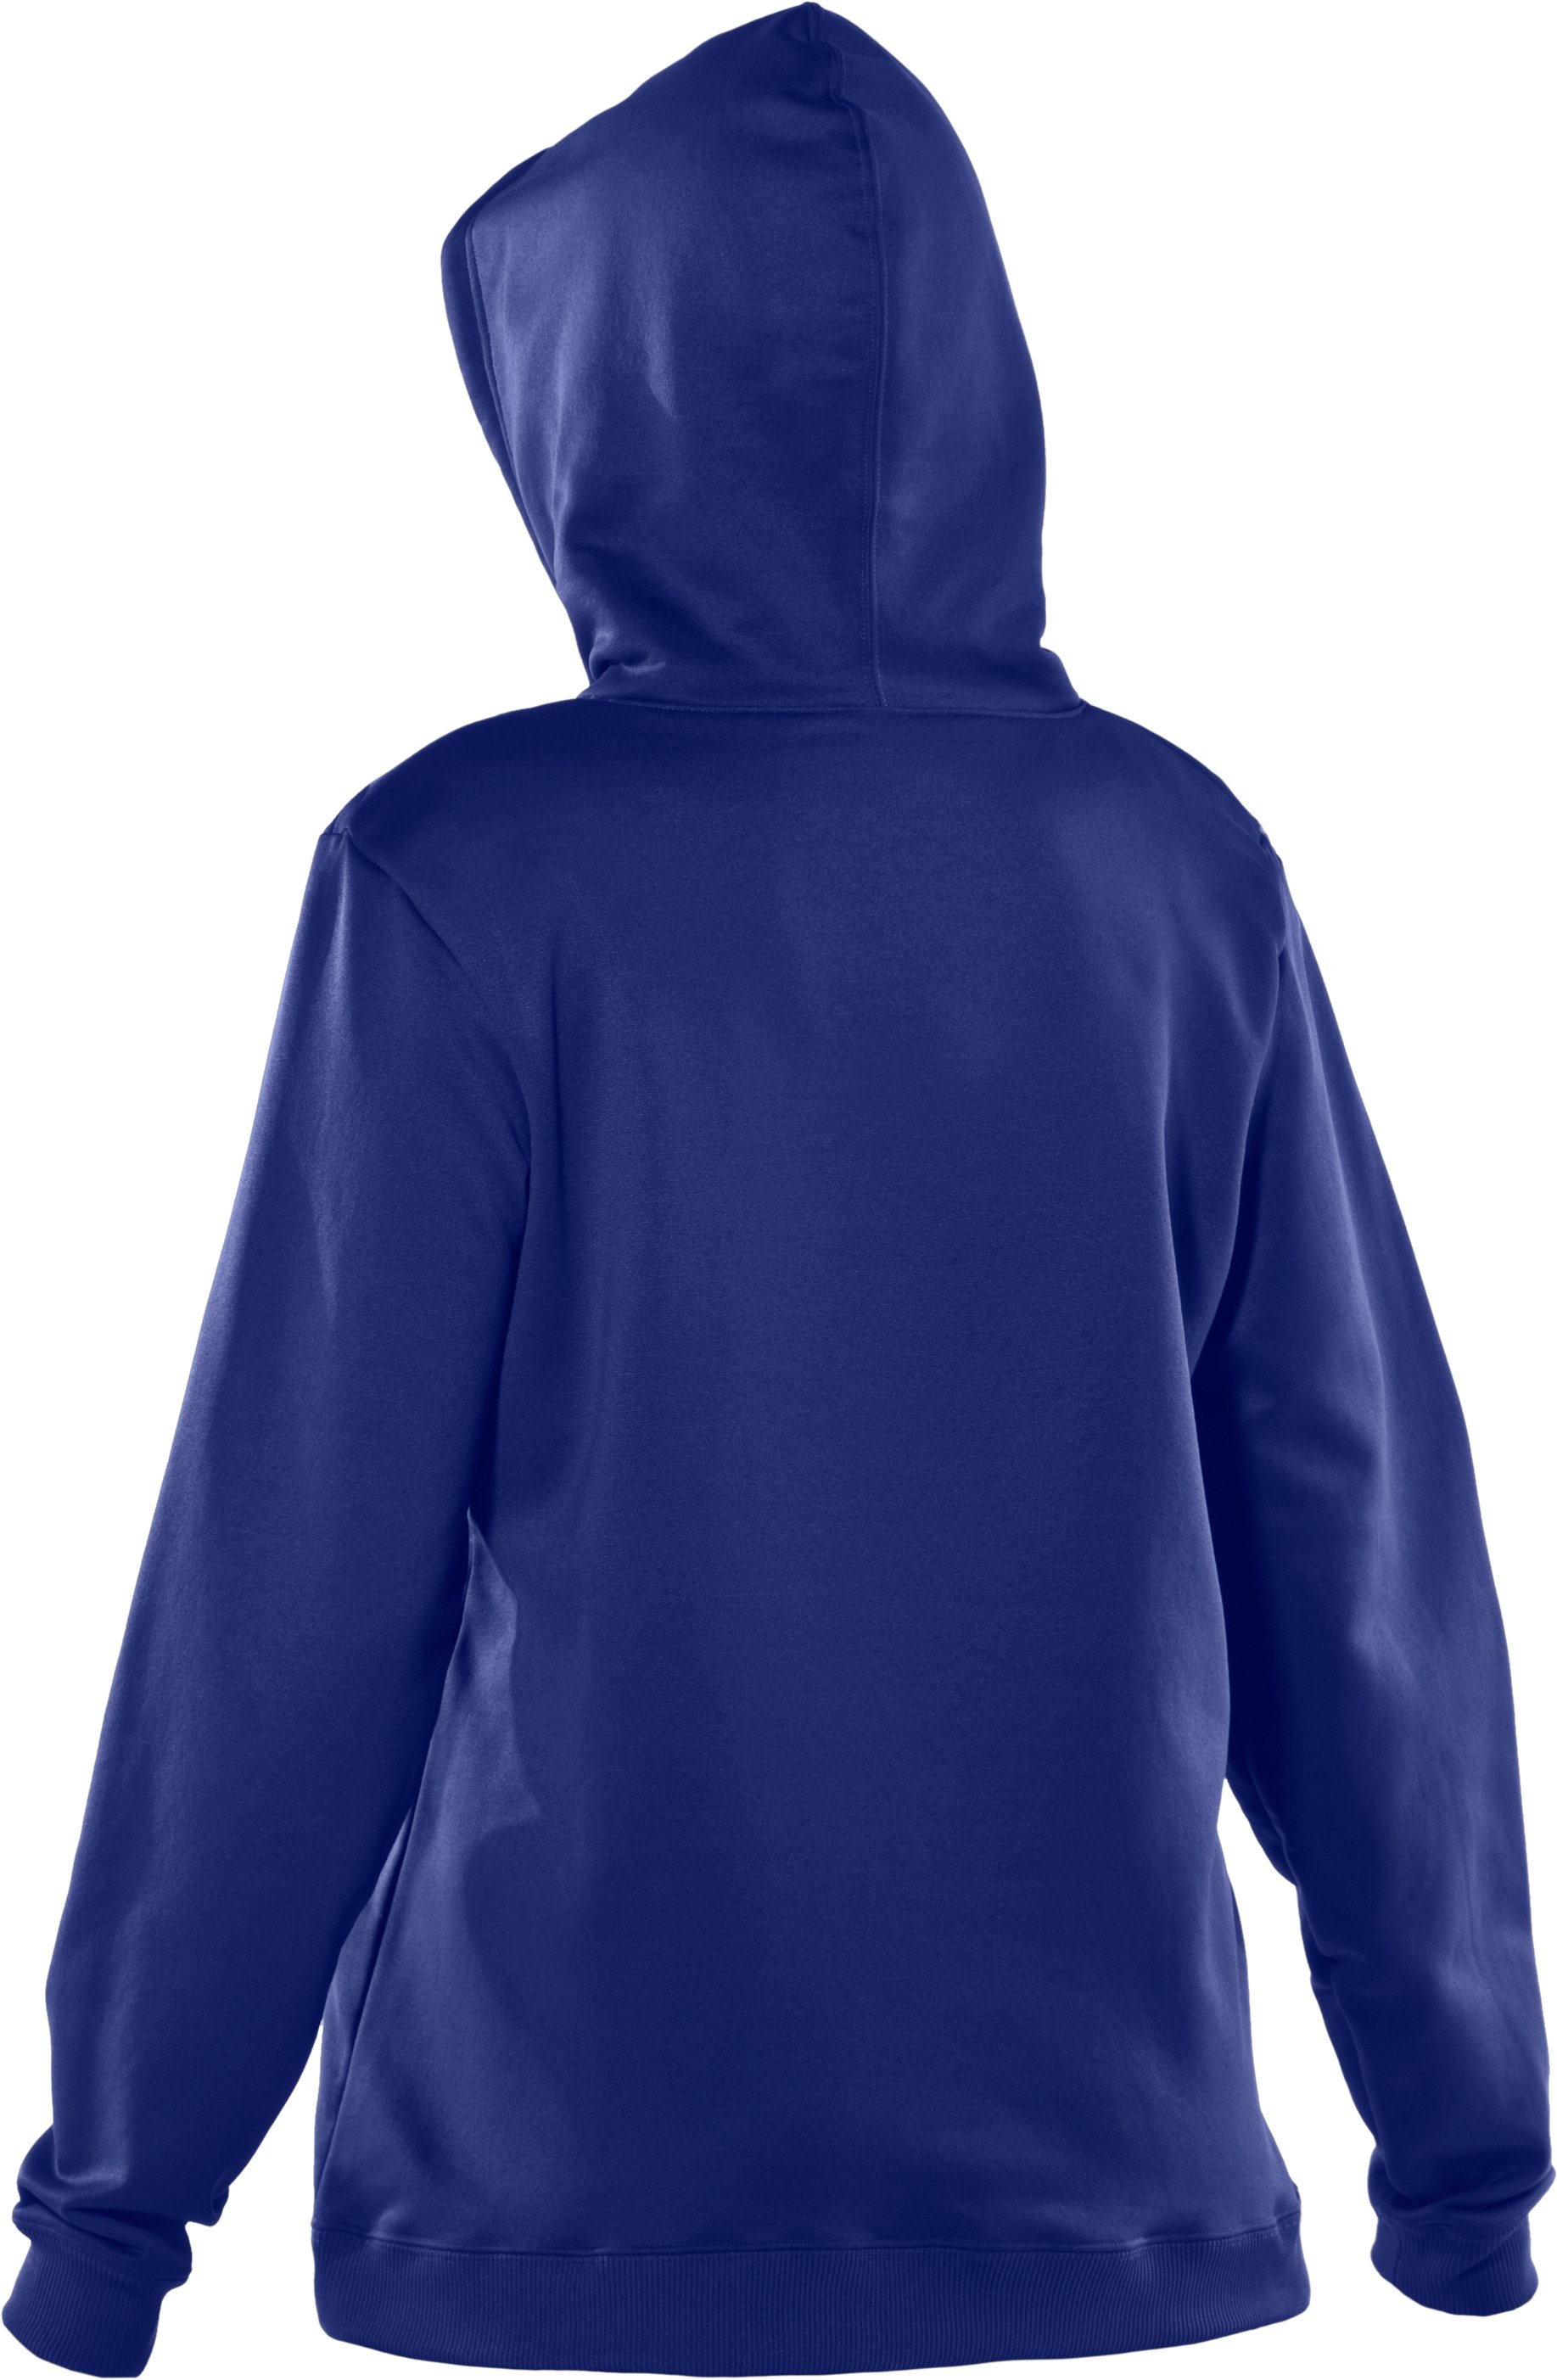 Women's Armour® Fleece Team Hoodie, Royal